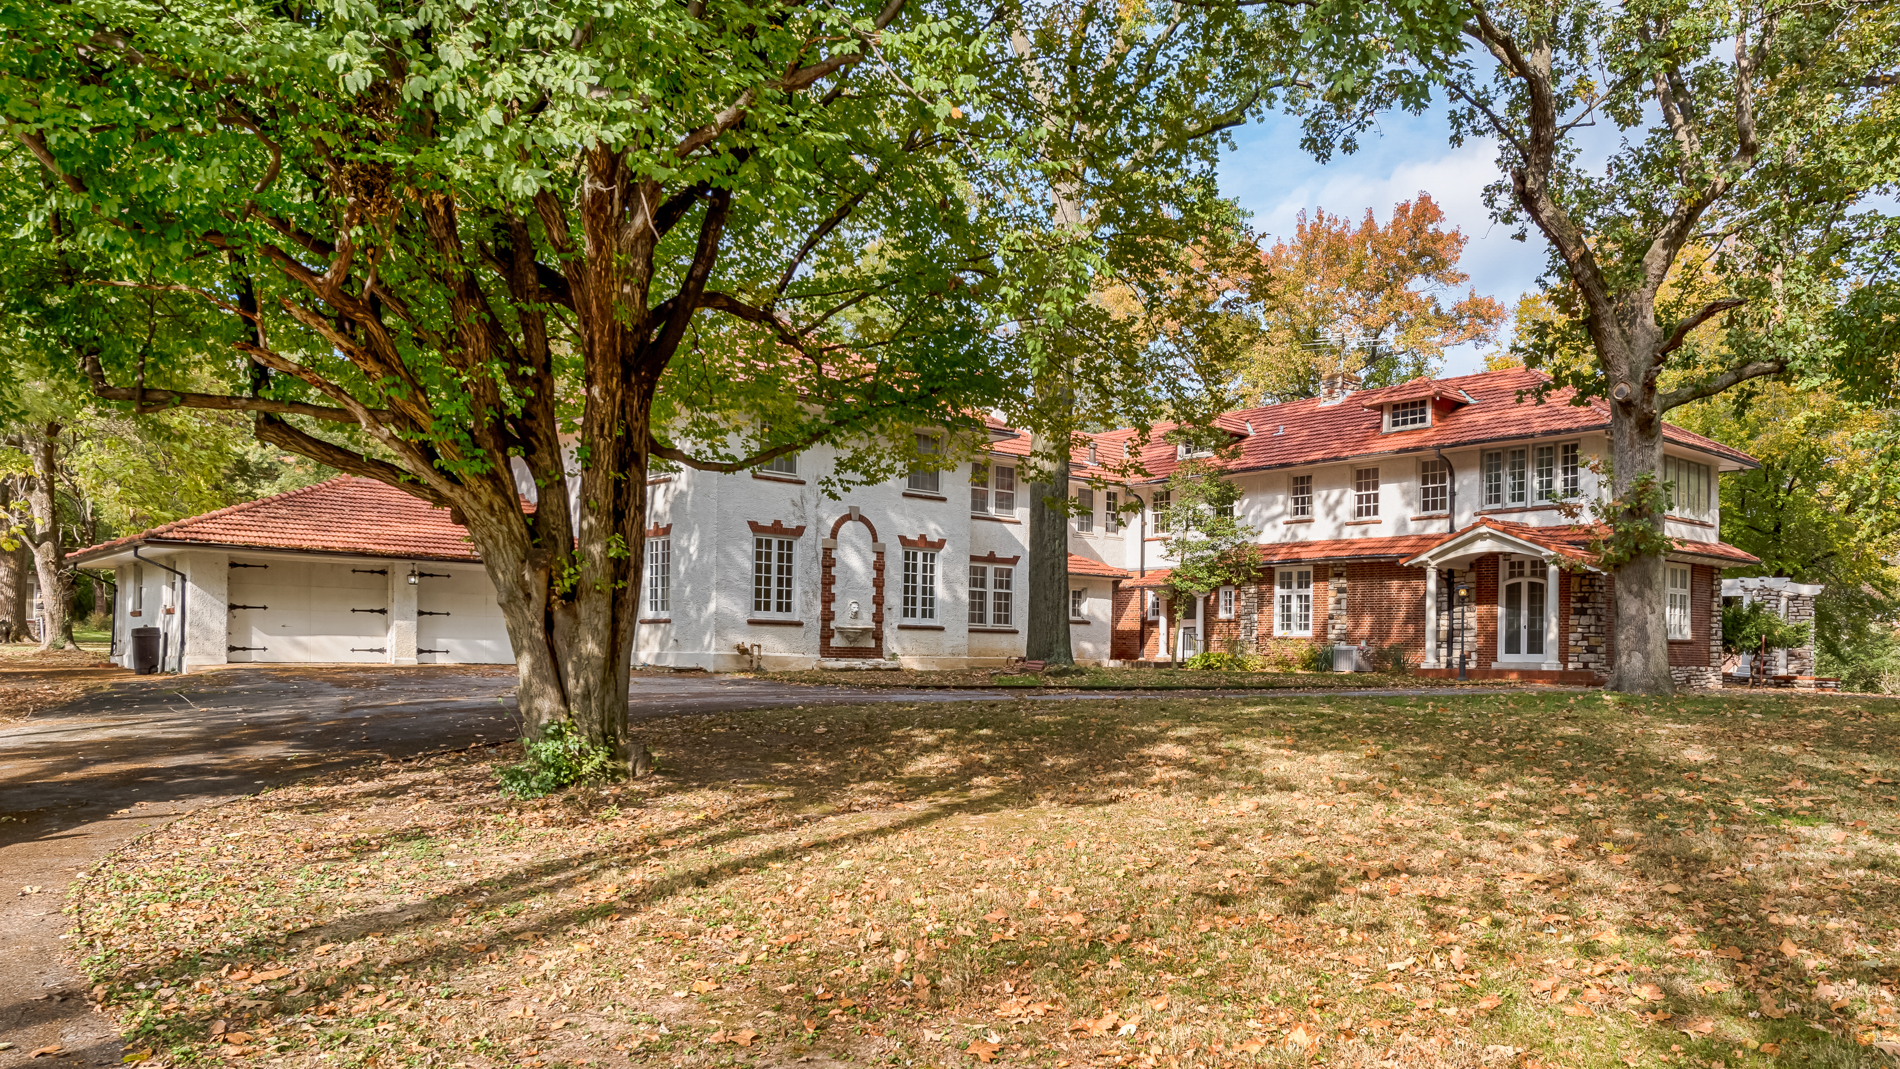 Single Family Home for Sale at The Watkins Estate 1601 South Warson Road Ladue, Missouri 63124 United States